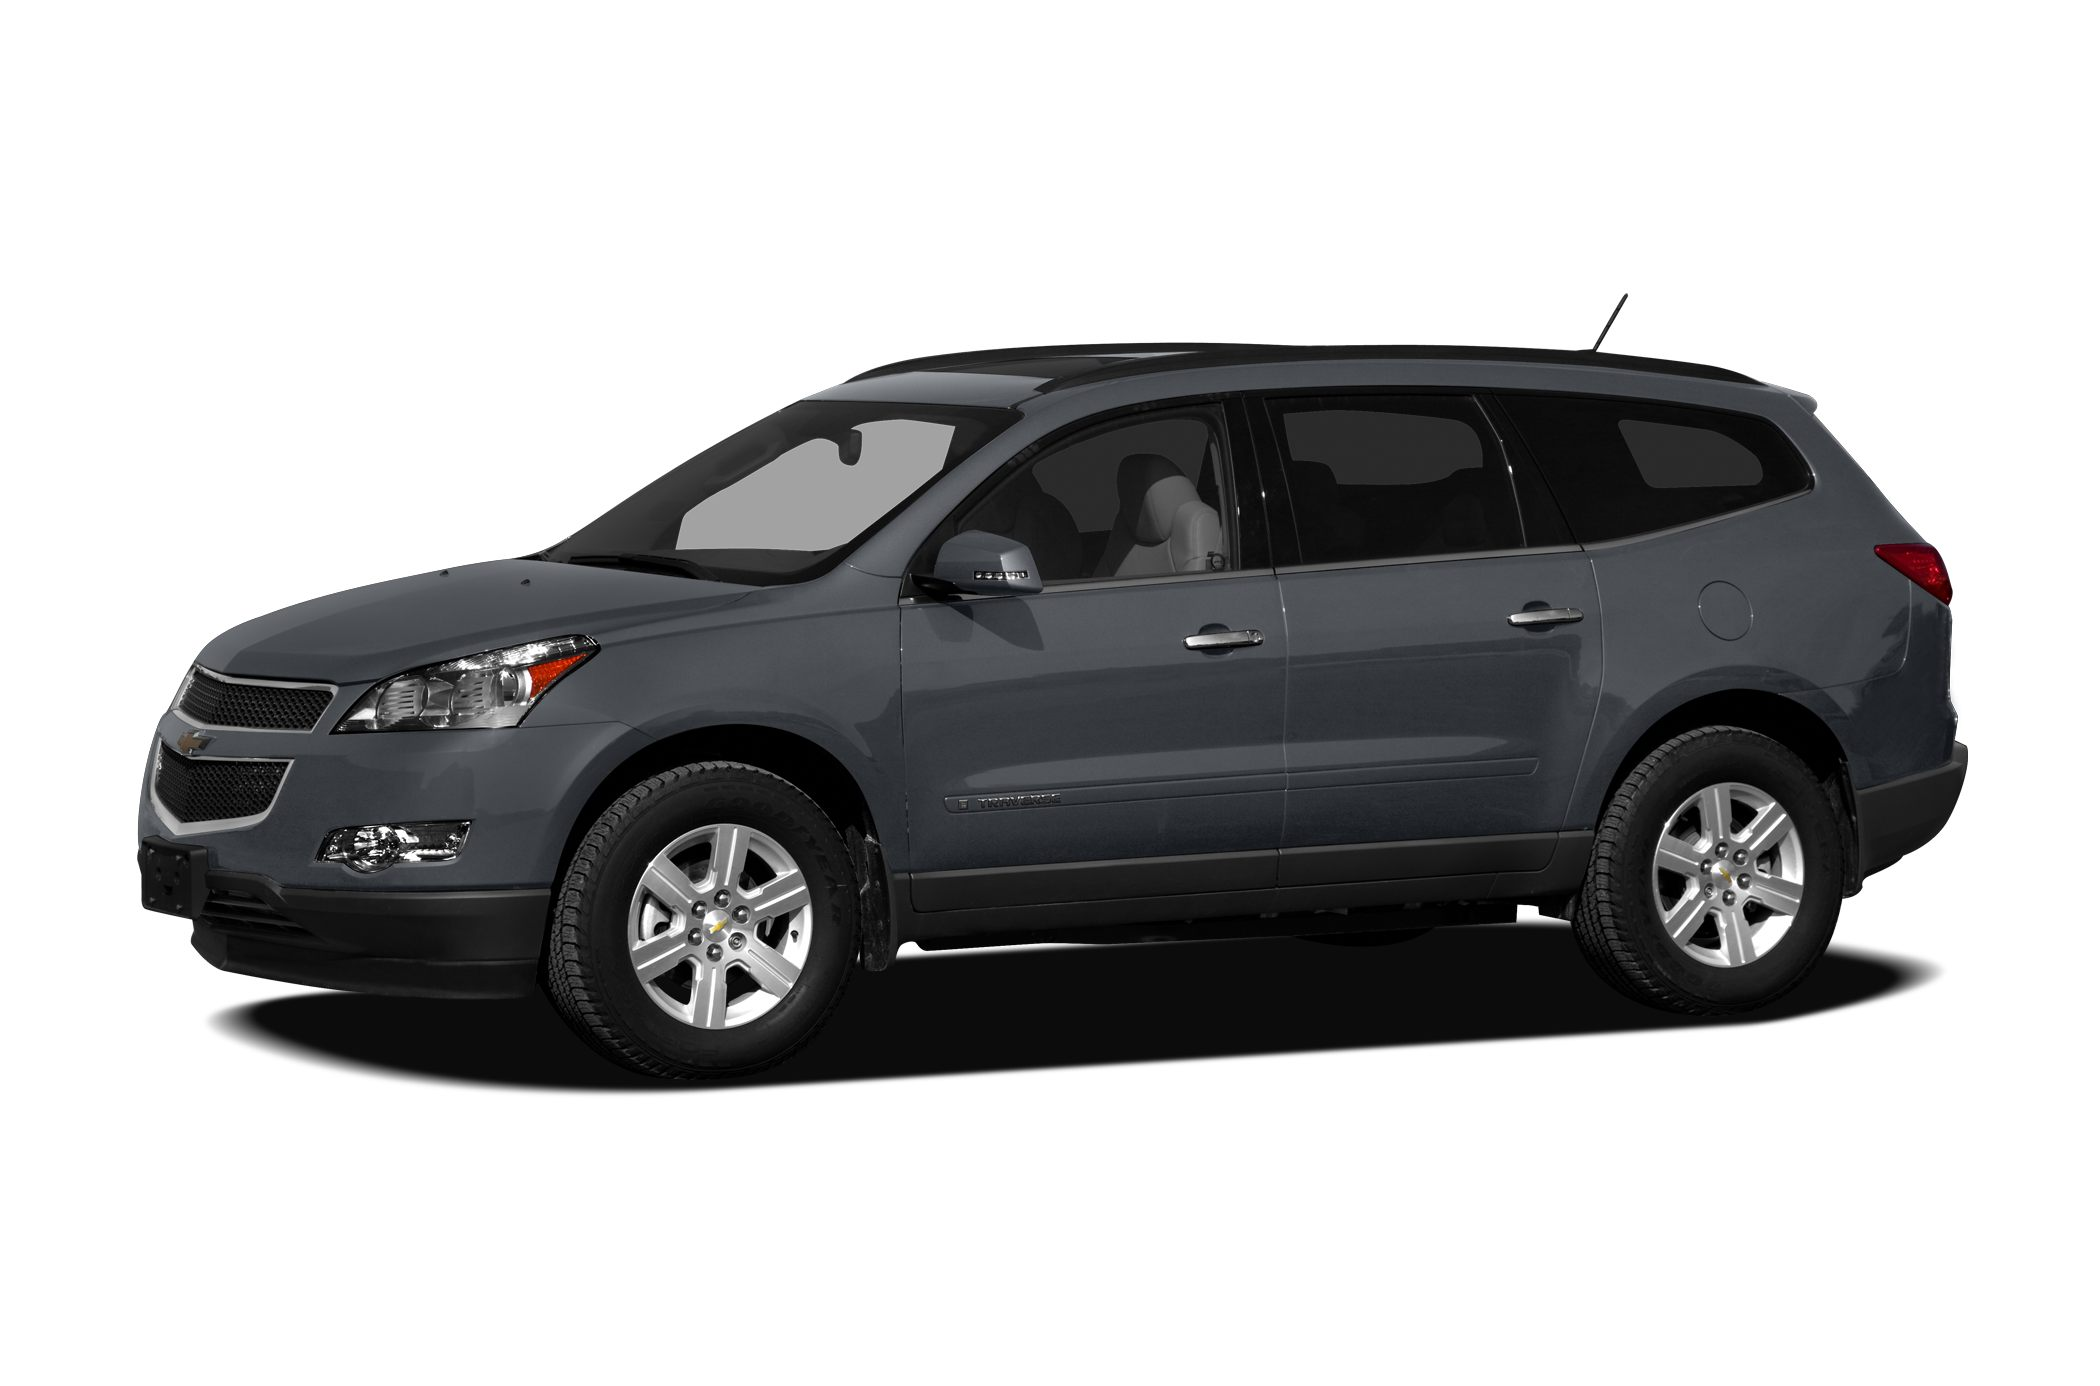 2010 Chevrolet Traverse LT SUV for sale in Jackson for $14,911 with 100,846 miles